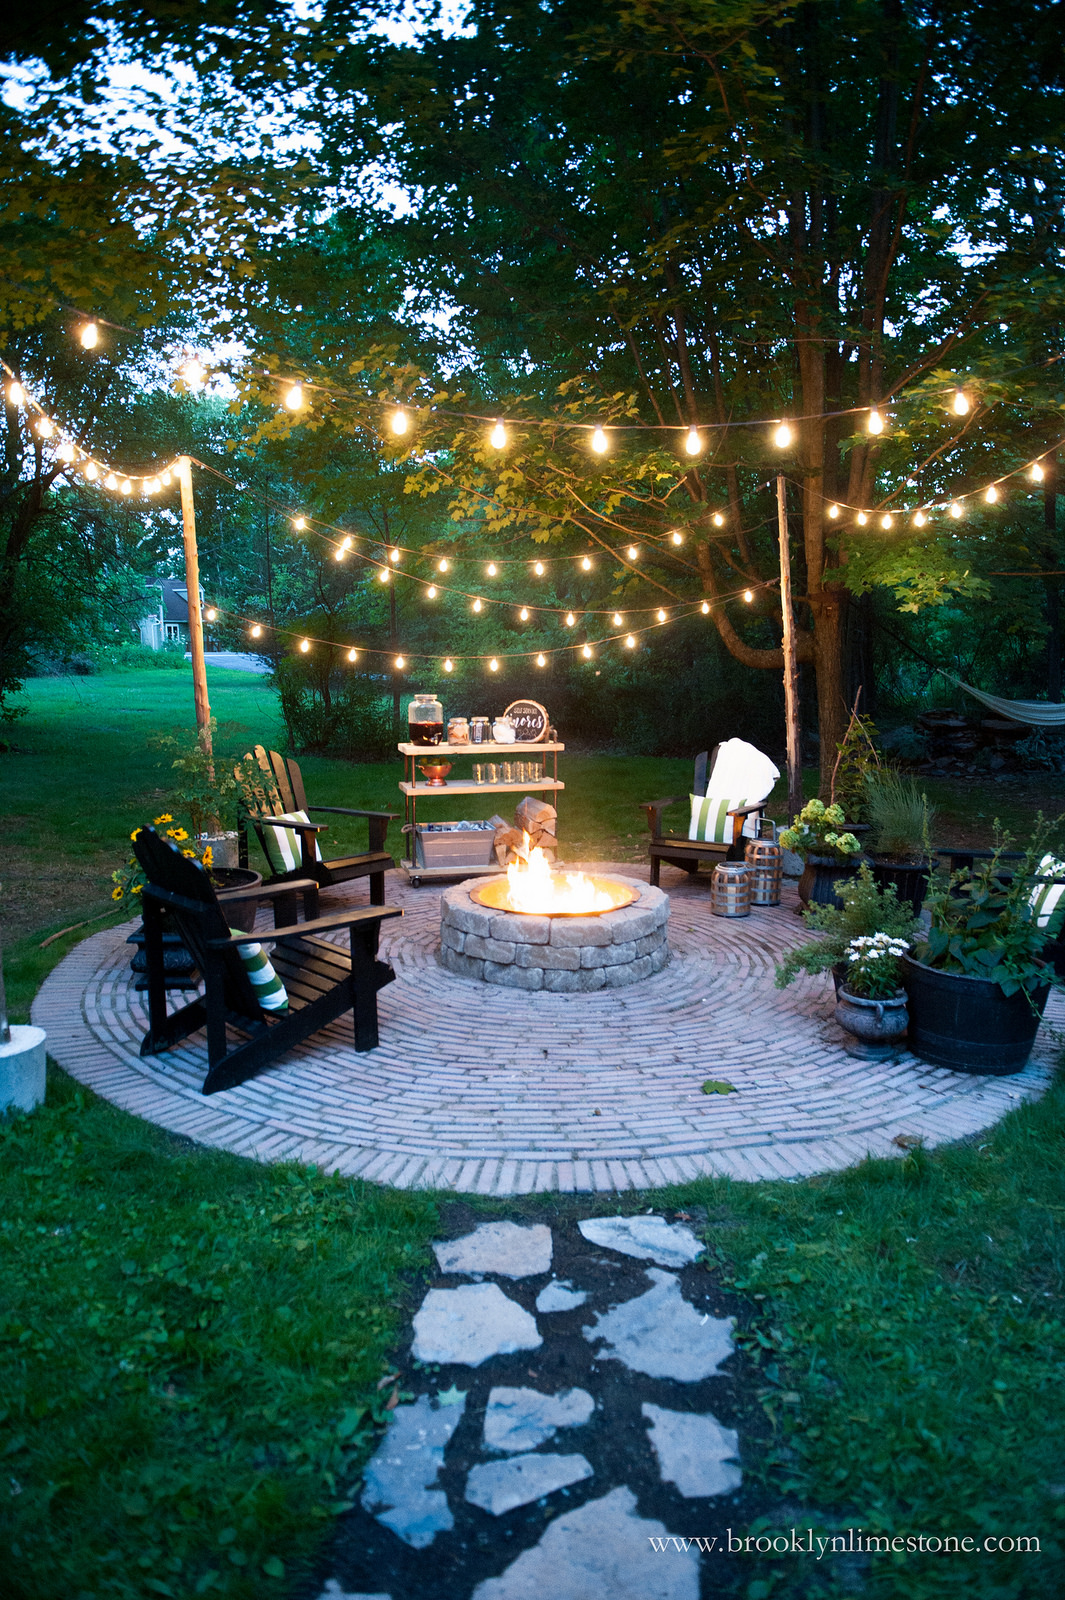 Cozy Outdoor Fire Pit And String Lights